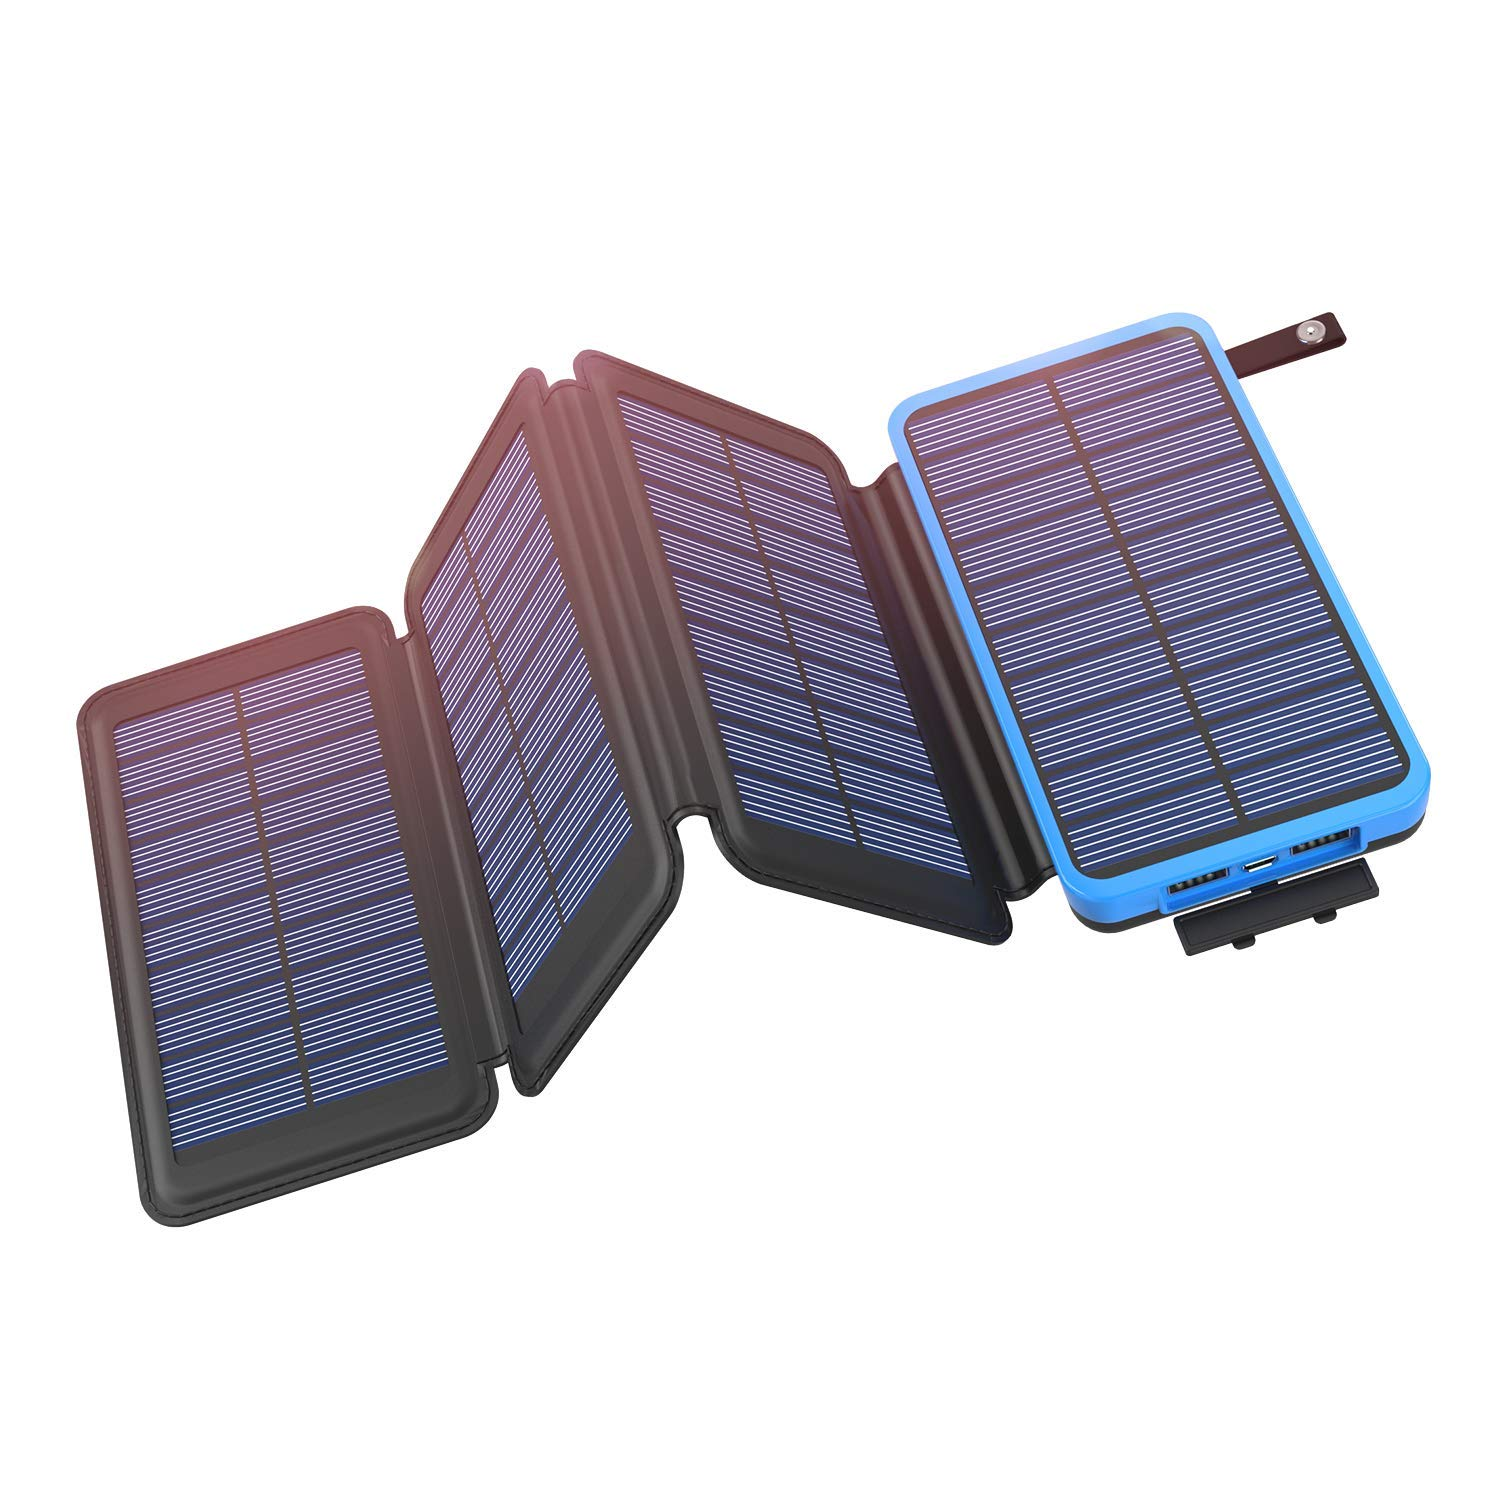 Solar Power Bank with External Battery Pack 4 in 1, Outdoor Portable Charger with LED Flashlight and USB Dual Output 5V 1A/2.1A